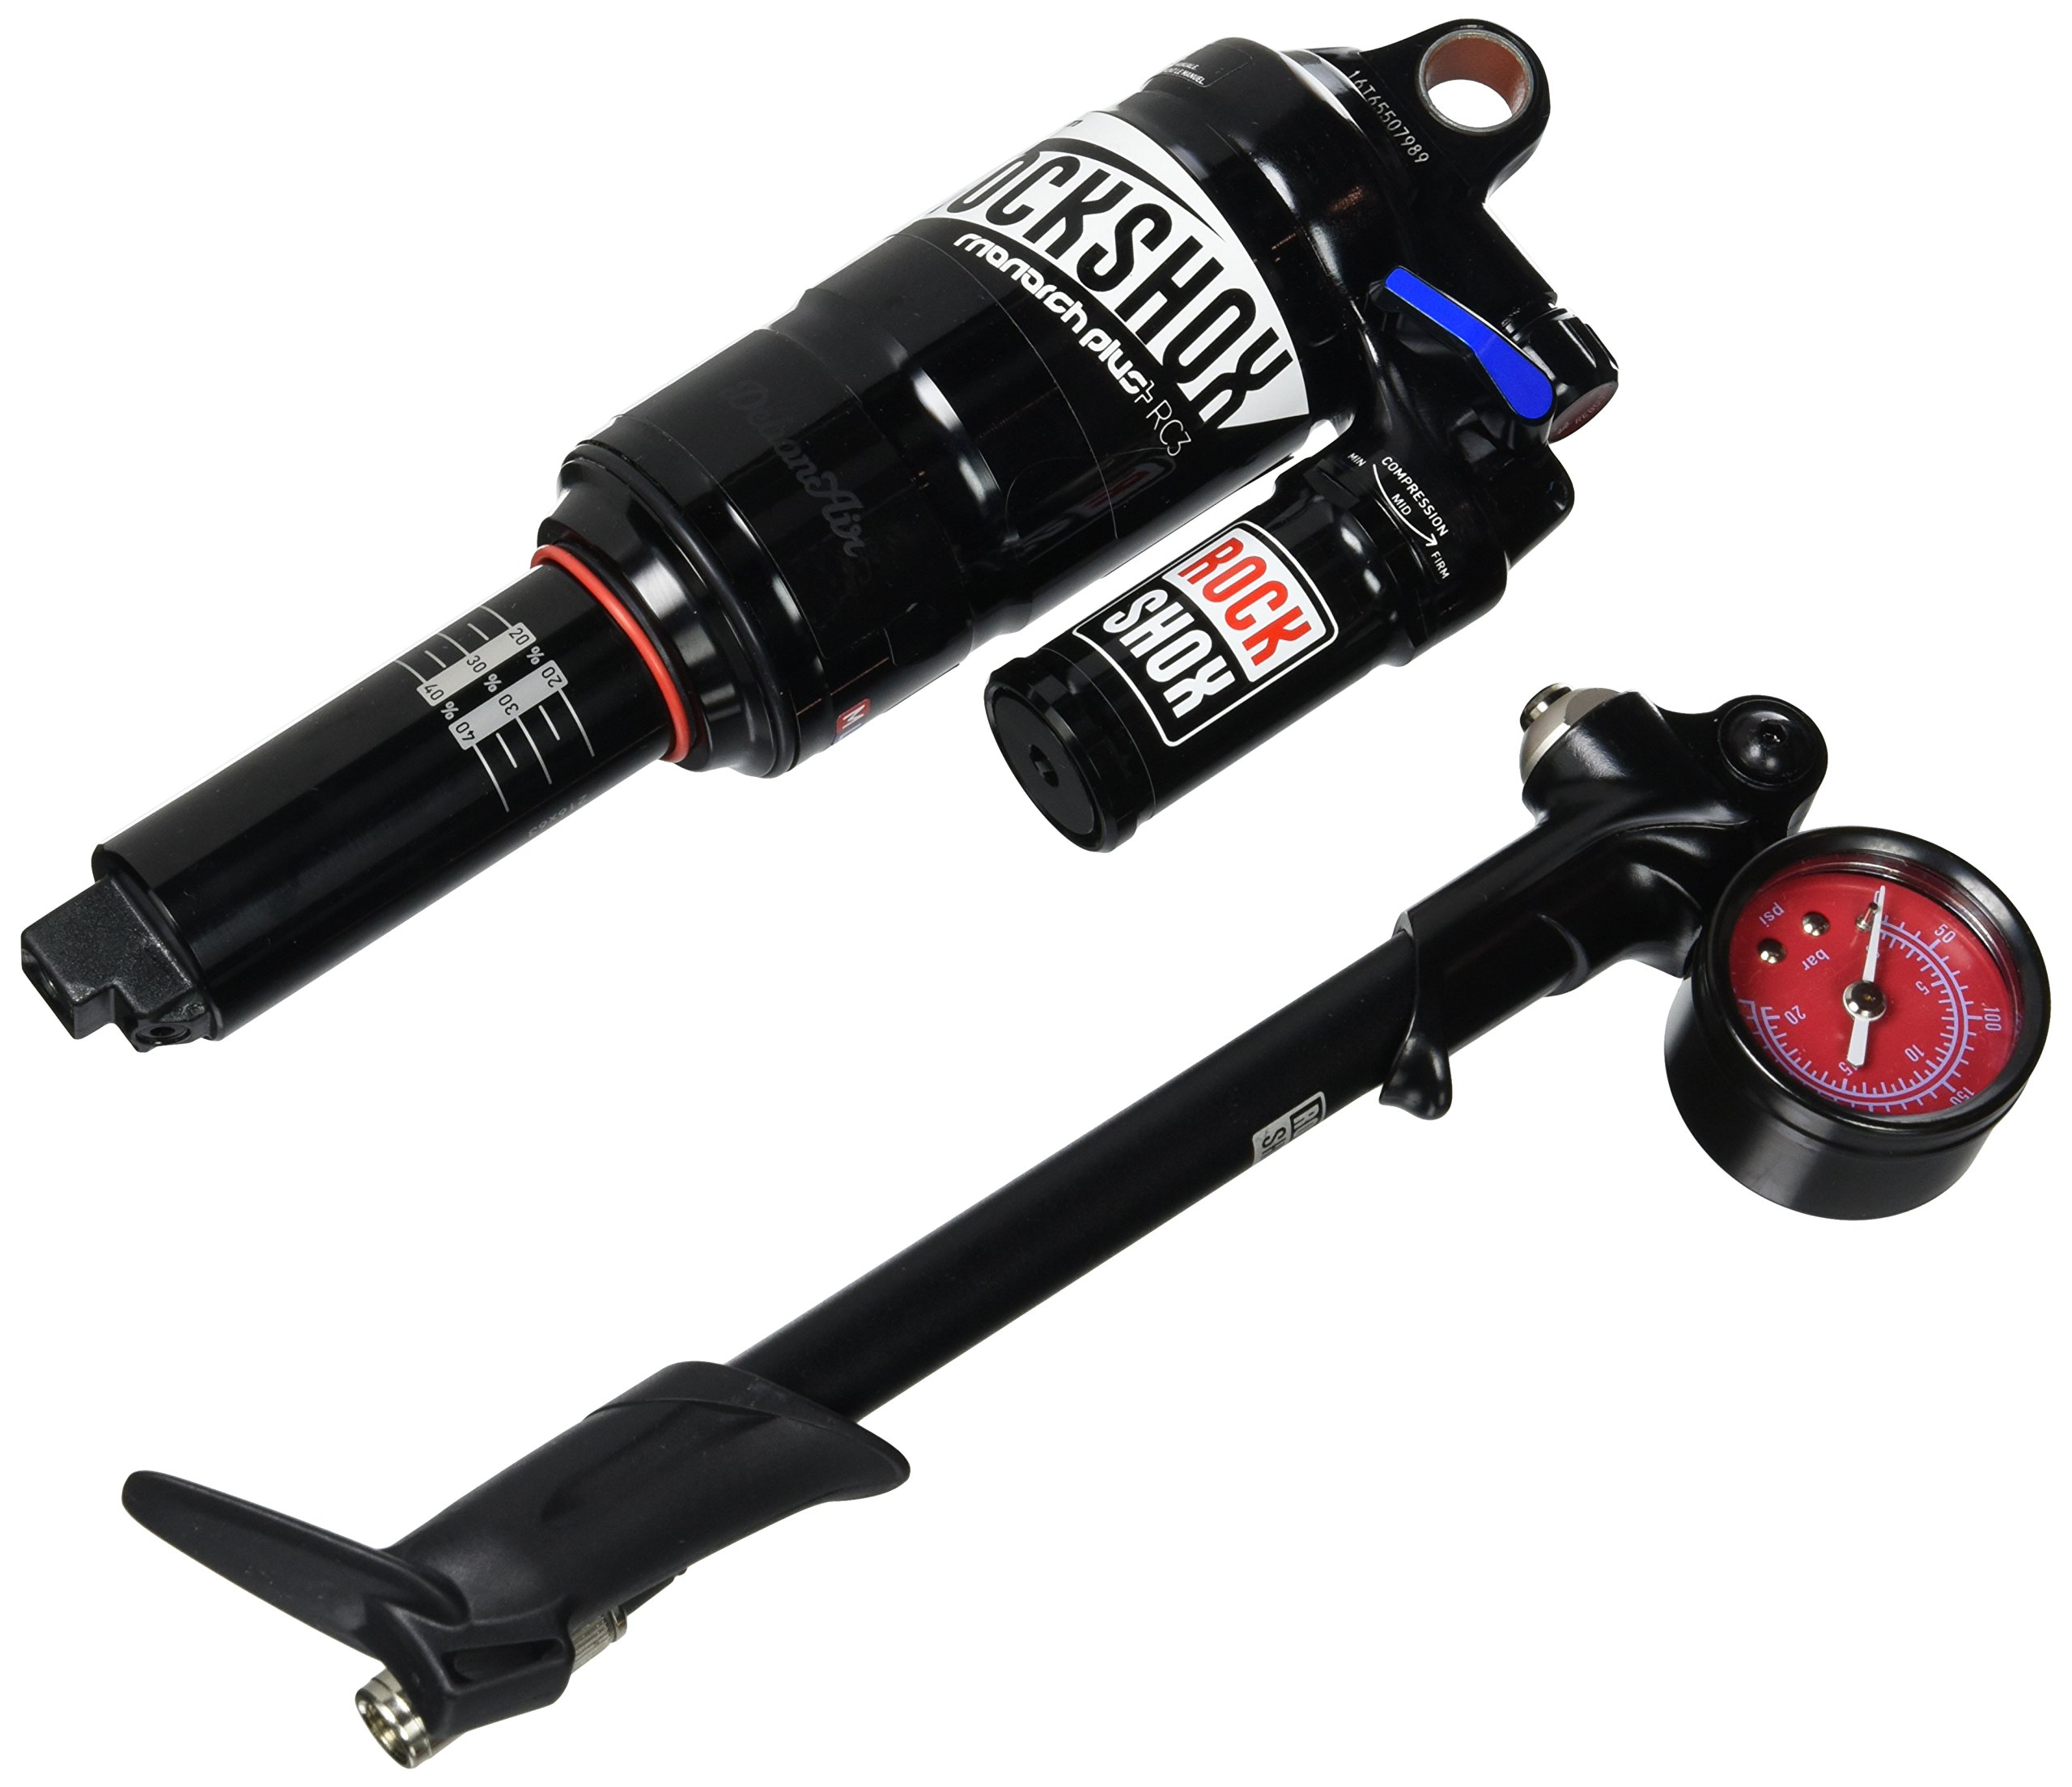 RockShox Monarch Plus RC3 Rear Shock 8.50 x 2.50 (216mm x 63mm) DebonAir